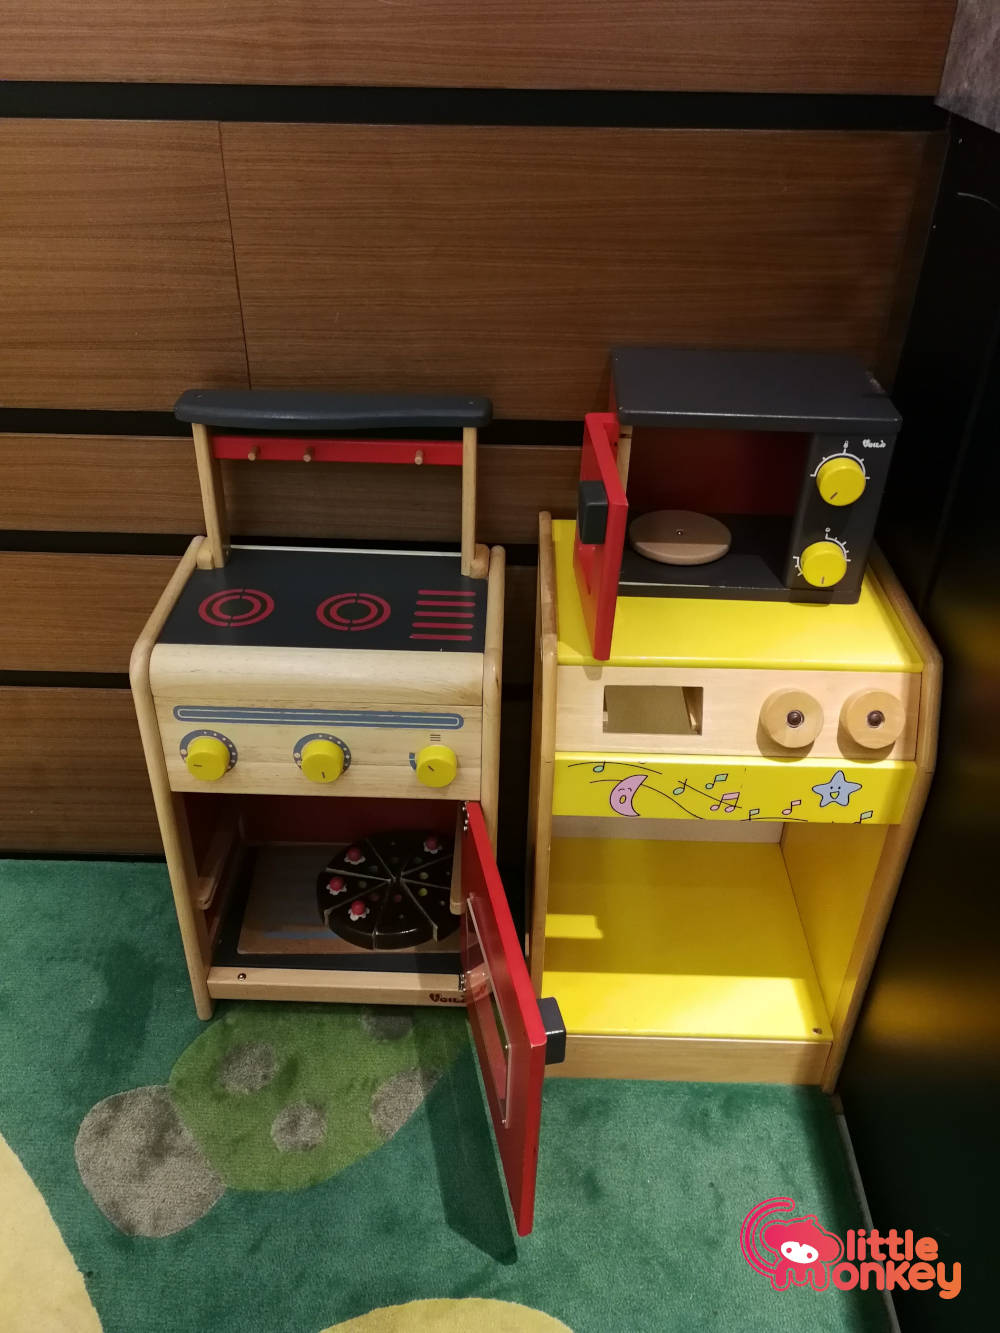 Wise Kid's toy cooking stove and microwave in Lee Garden Two